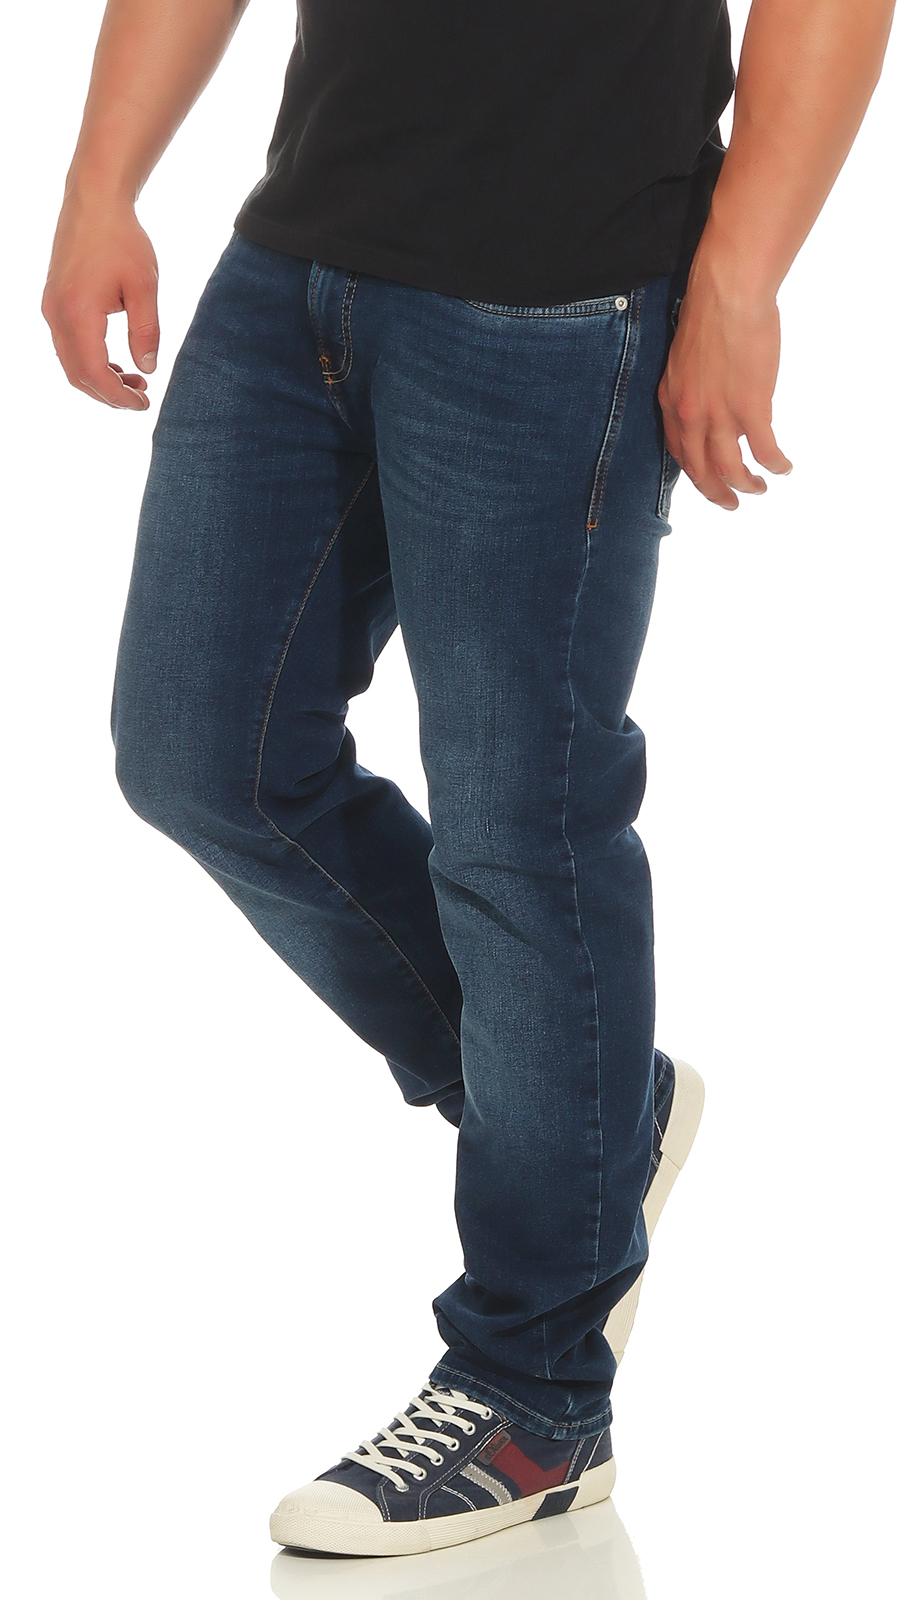 PIERRE-CARDIN-Herren-Jeans-Lyon-Hose-Tapered-Future-Flex-Super-Stretch-Premium-3 Indexbild 7